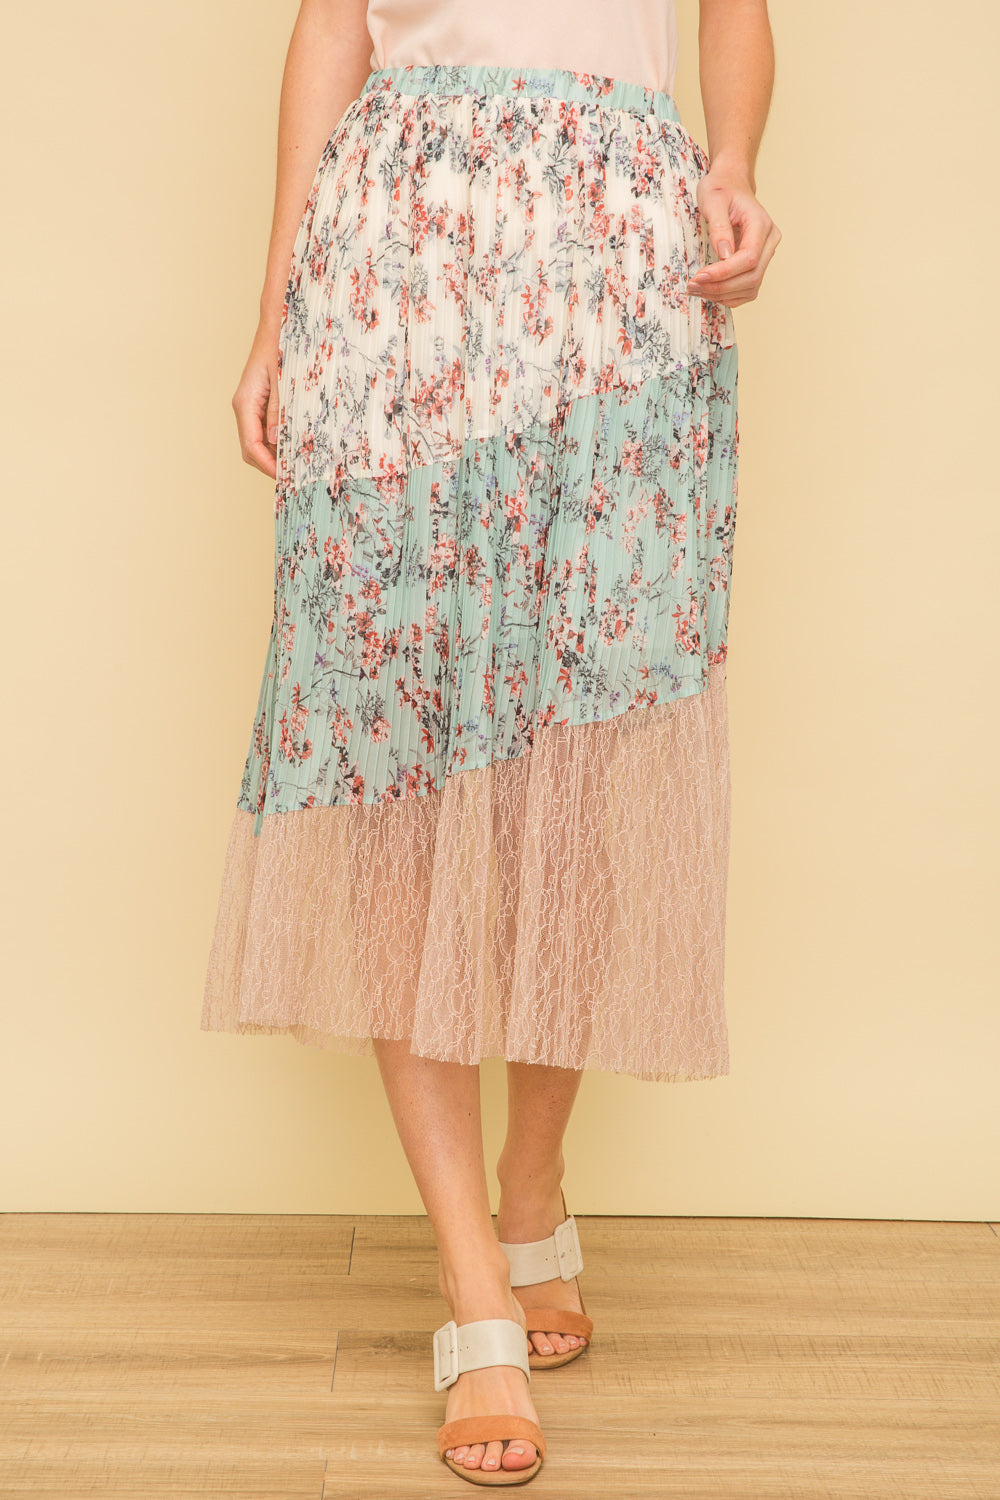 FLORAL/LACE SKIRT